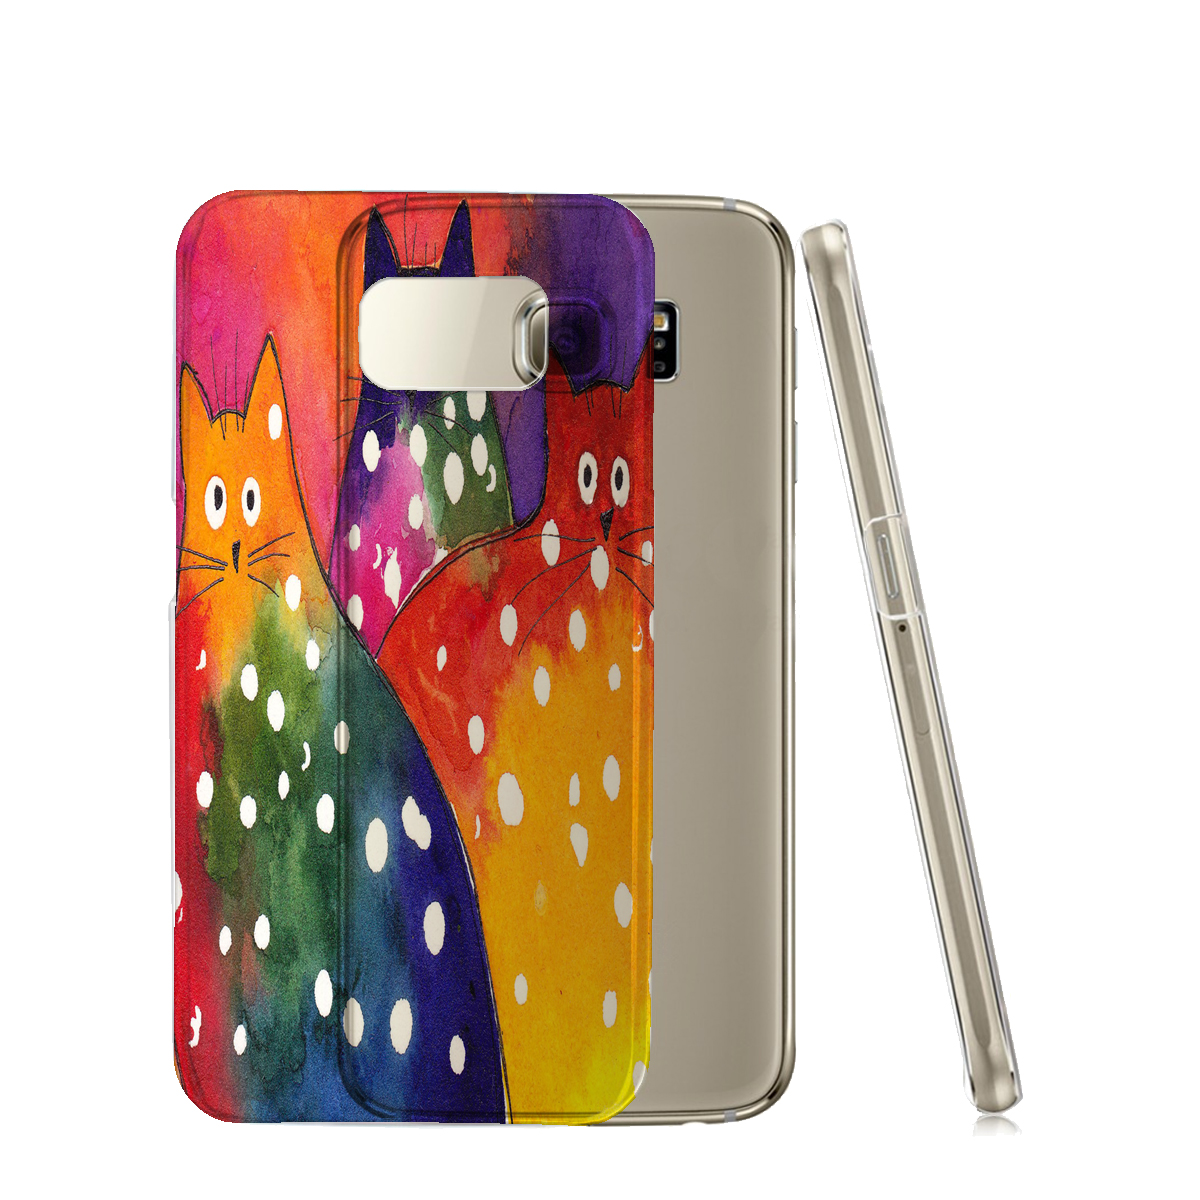 KuzmarK™ Samsung Galaxy S6 Edge Clear Cover Case - Two-Toned Polka-Dot Chunky Kitties Abstract Cat Art by Denise Every